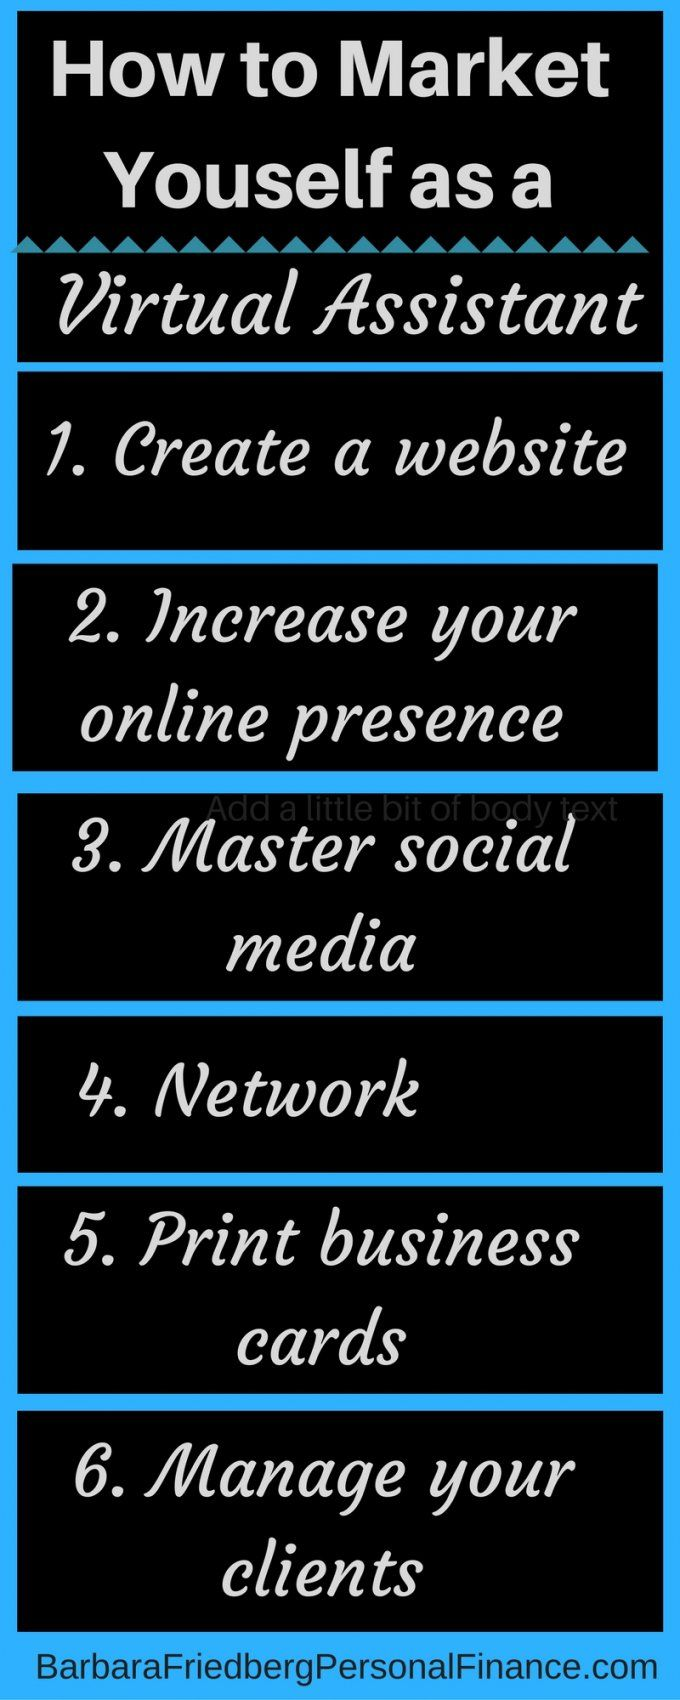 You can build a viable #business as a virtual assistant with a little elbow grease. Get top notch #marketing tips. #entrepreur #make #money #virtualassistant. This is a comprehensive, #howto series into the #VA business.